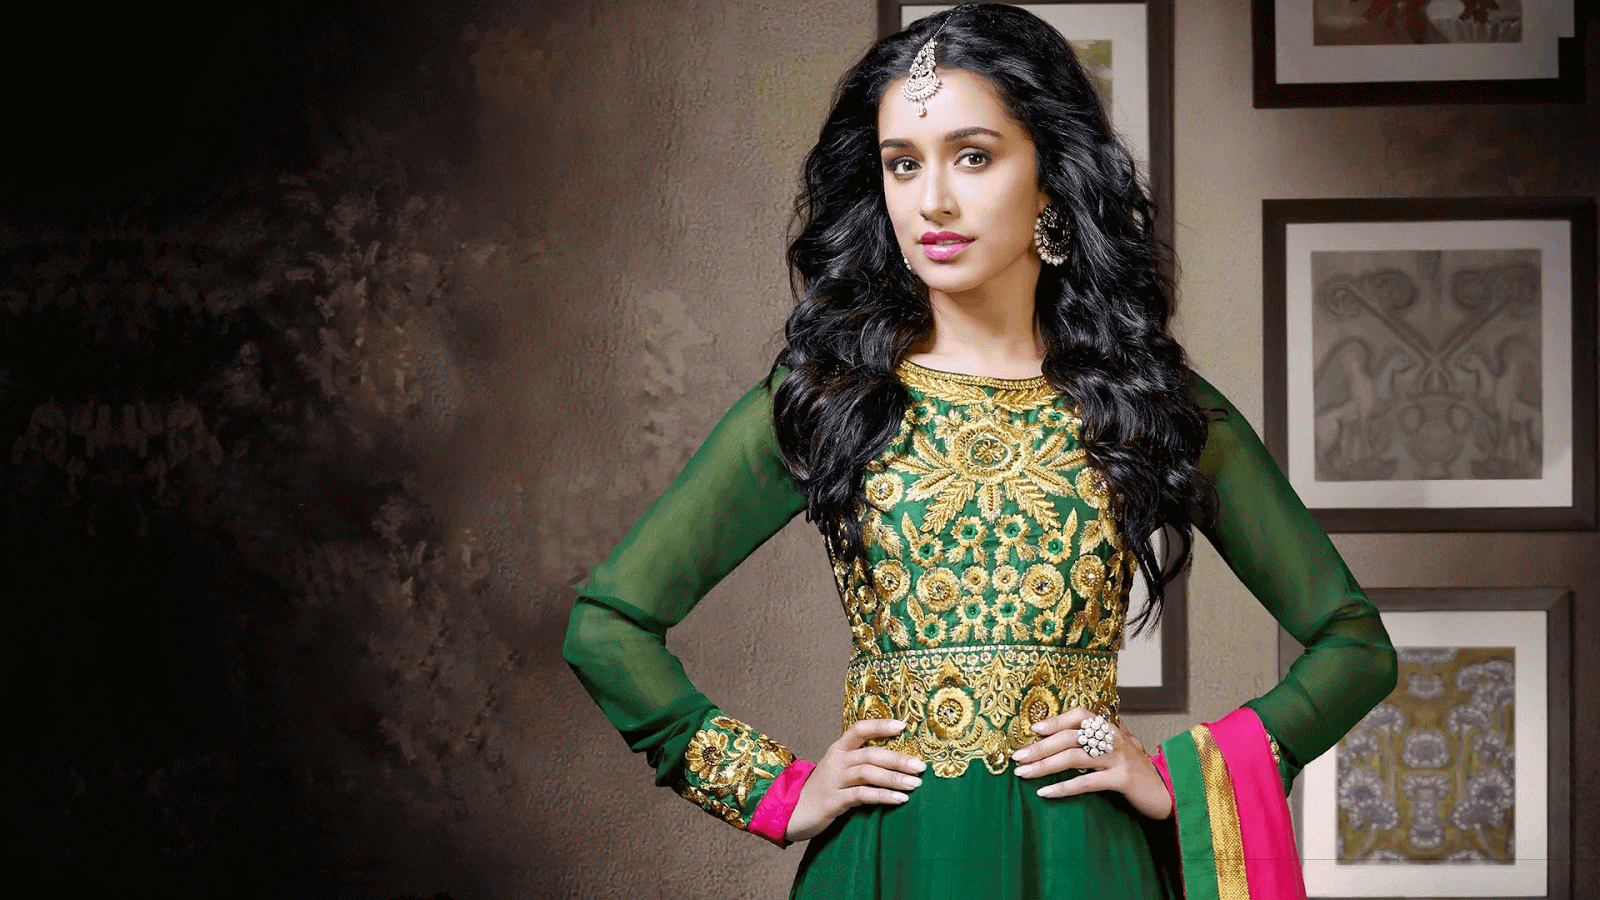 shraddha_kapoor_wallpaper_97338058